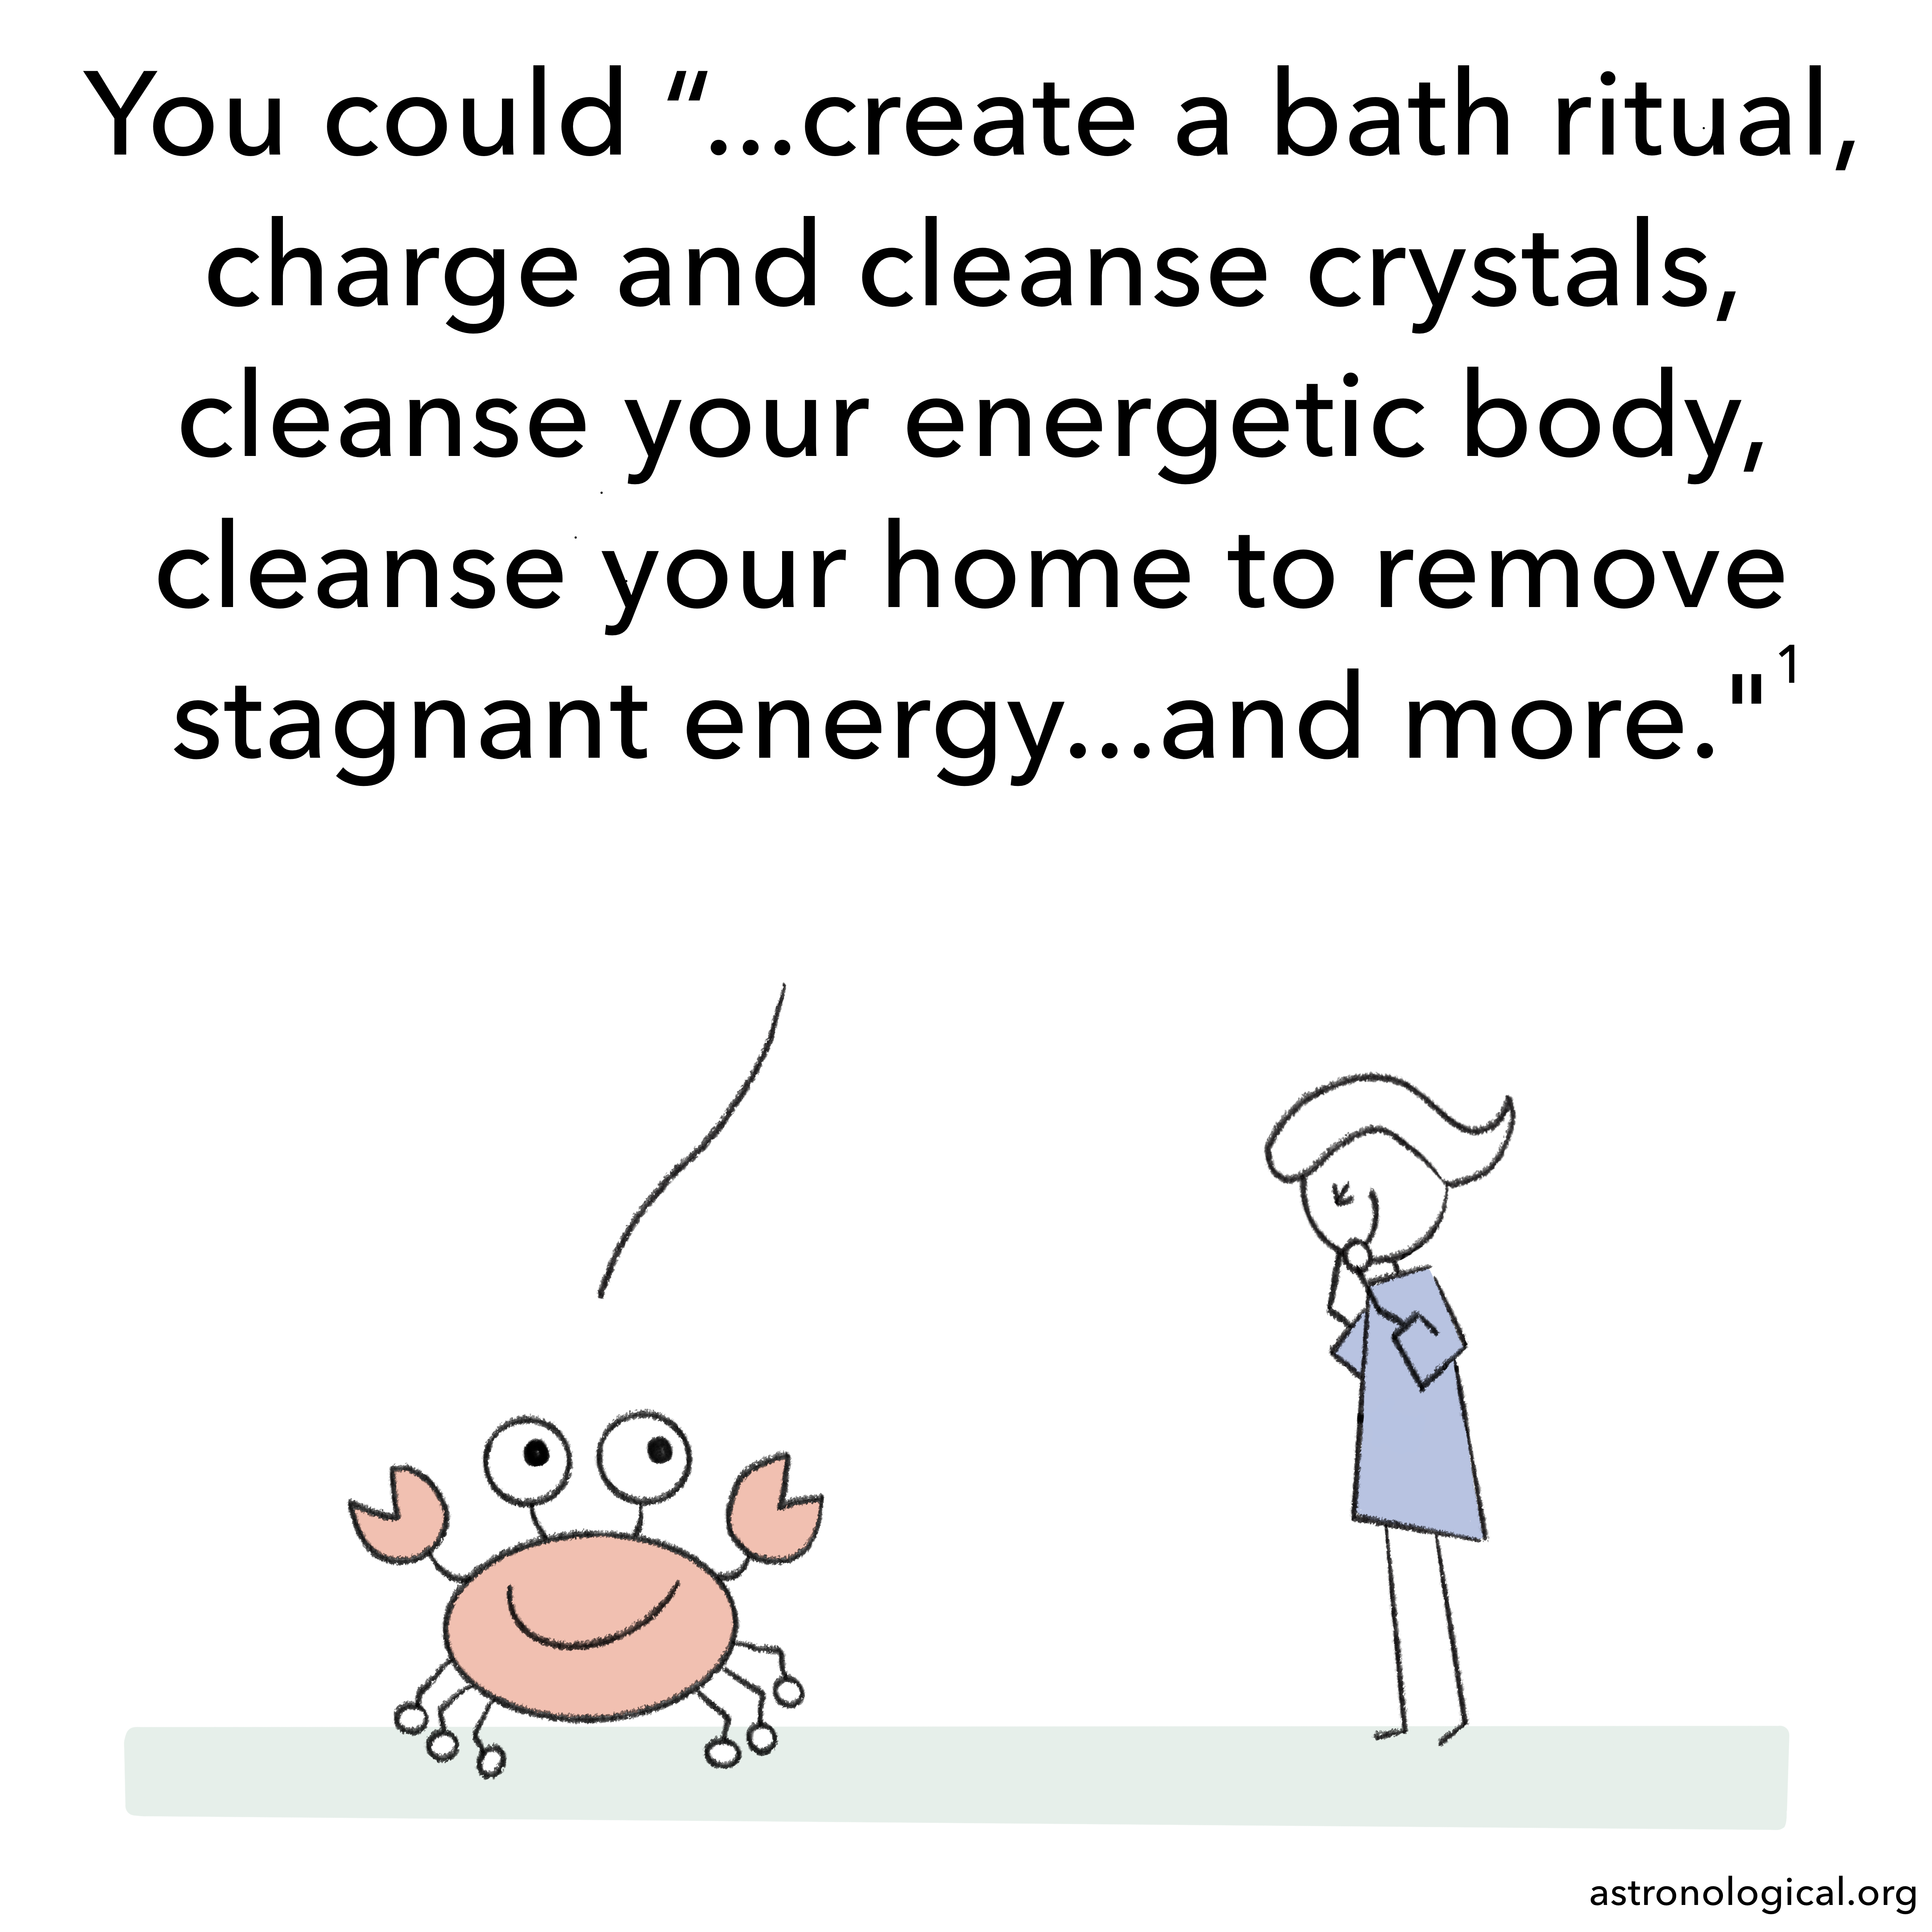 The crab continues: You could create a bath ritual, charge and cleanse crystals, cleanse your energetic body, cleanse your home to remove stagnant energy and more. The girl faces the crab again. She is giggling with both hands over her mouth.